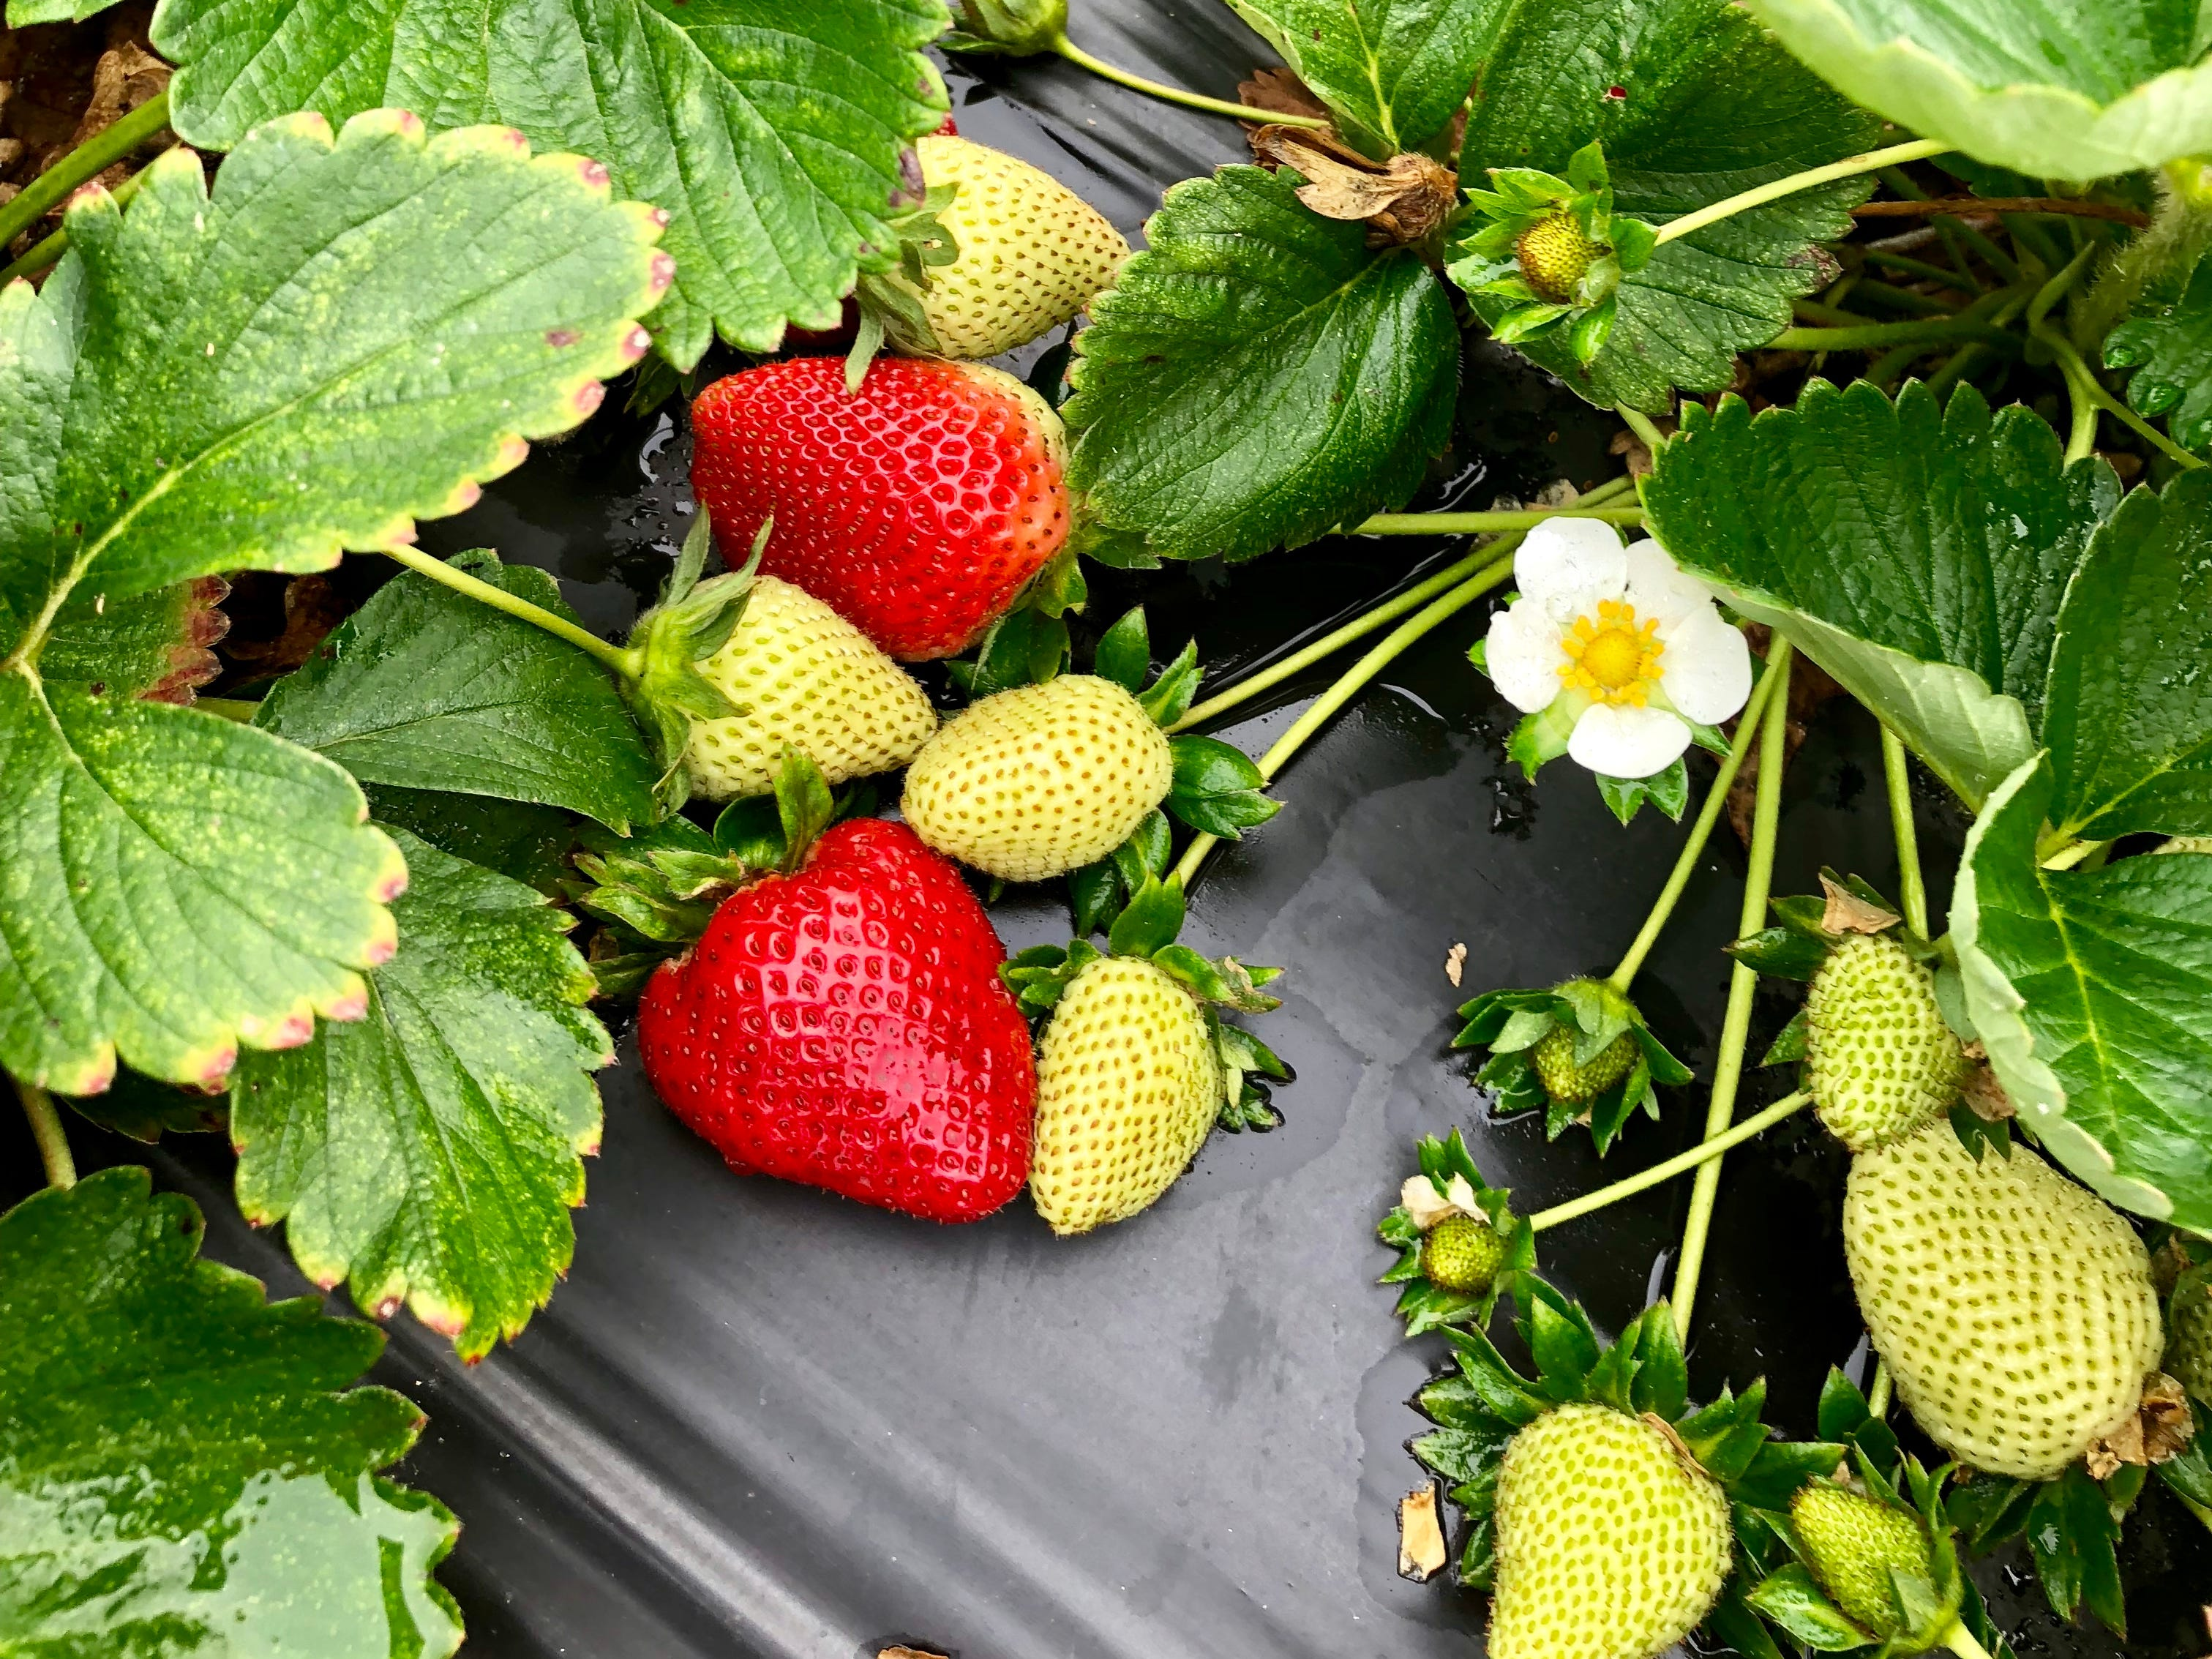 Visitors can pick strawberries at Mrs. Heather's Strawberry Farm in Albany, Louisiana.